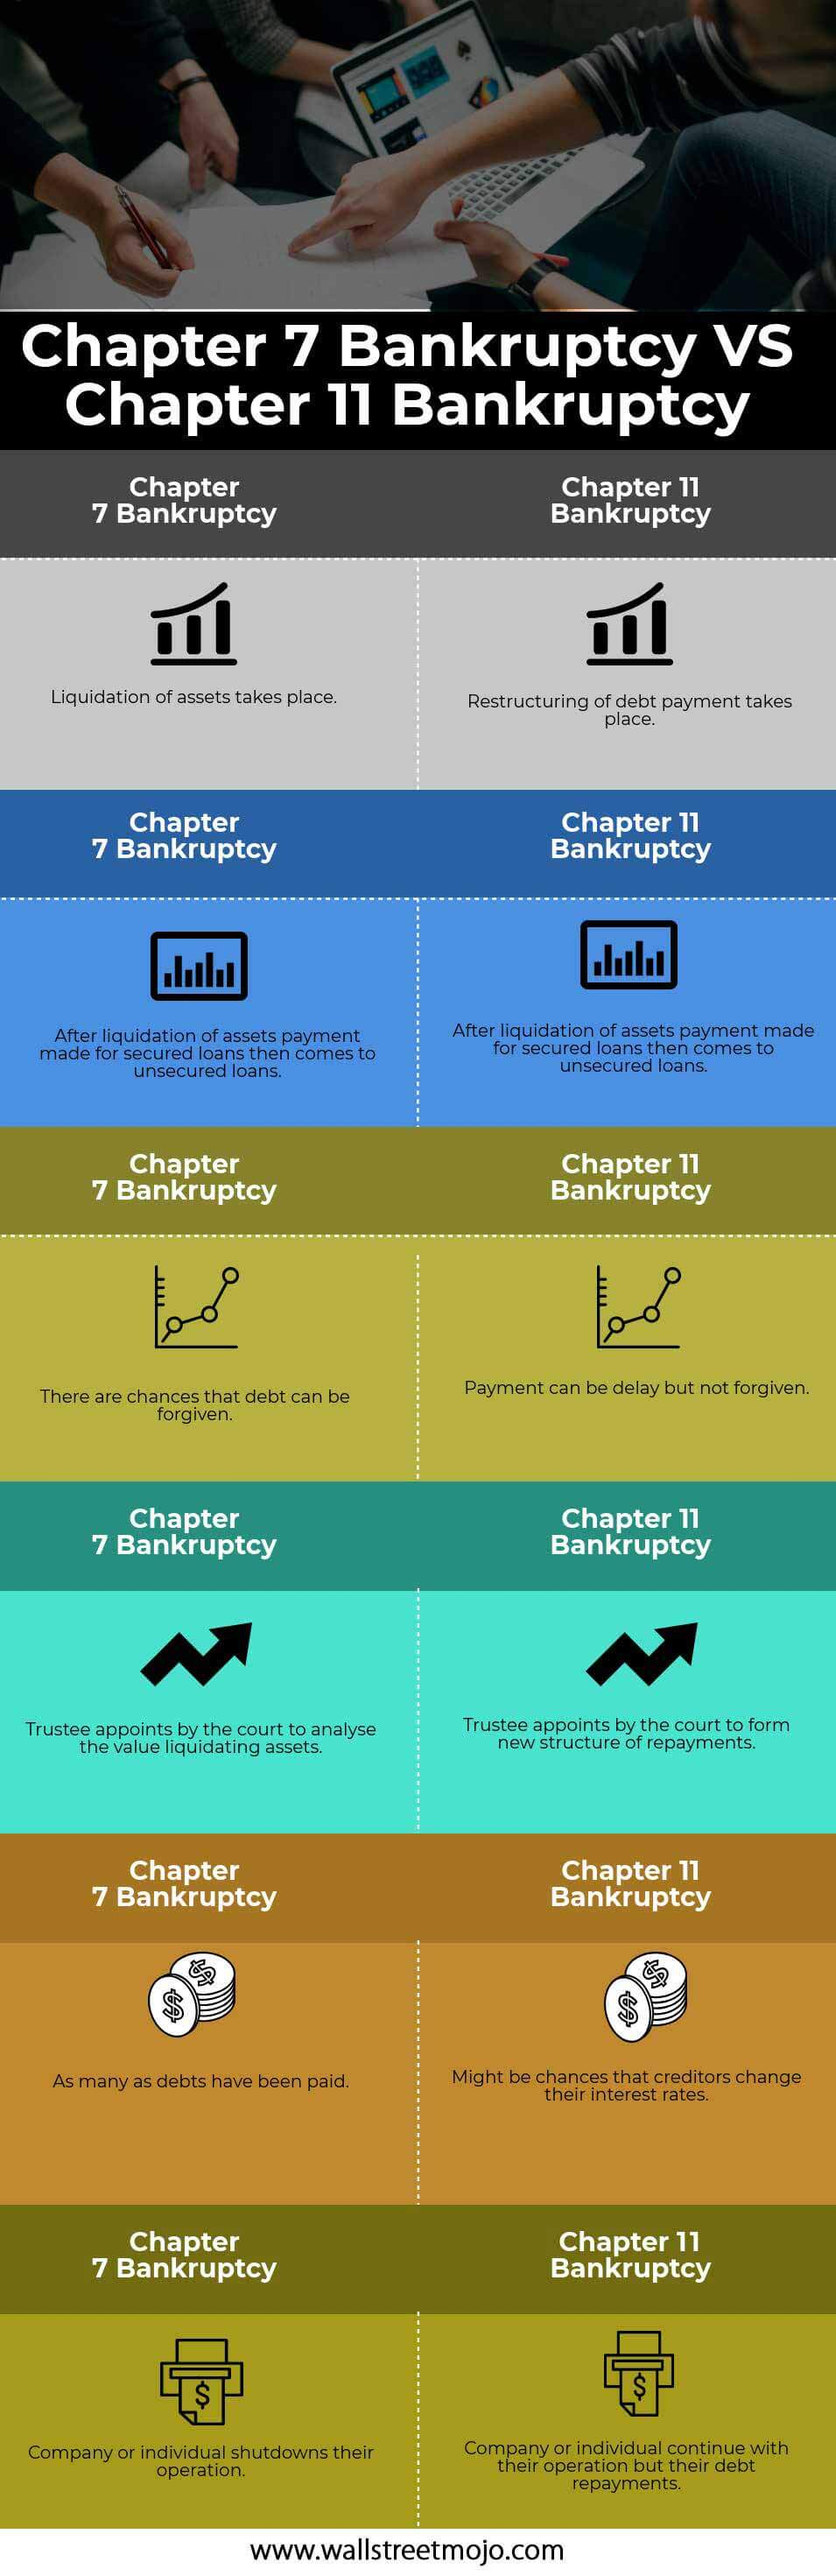 Chapter-7-Bankruptcy-VS-Chapter-11-Bankruptcy-info